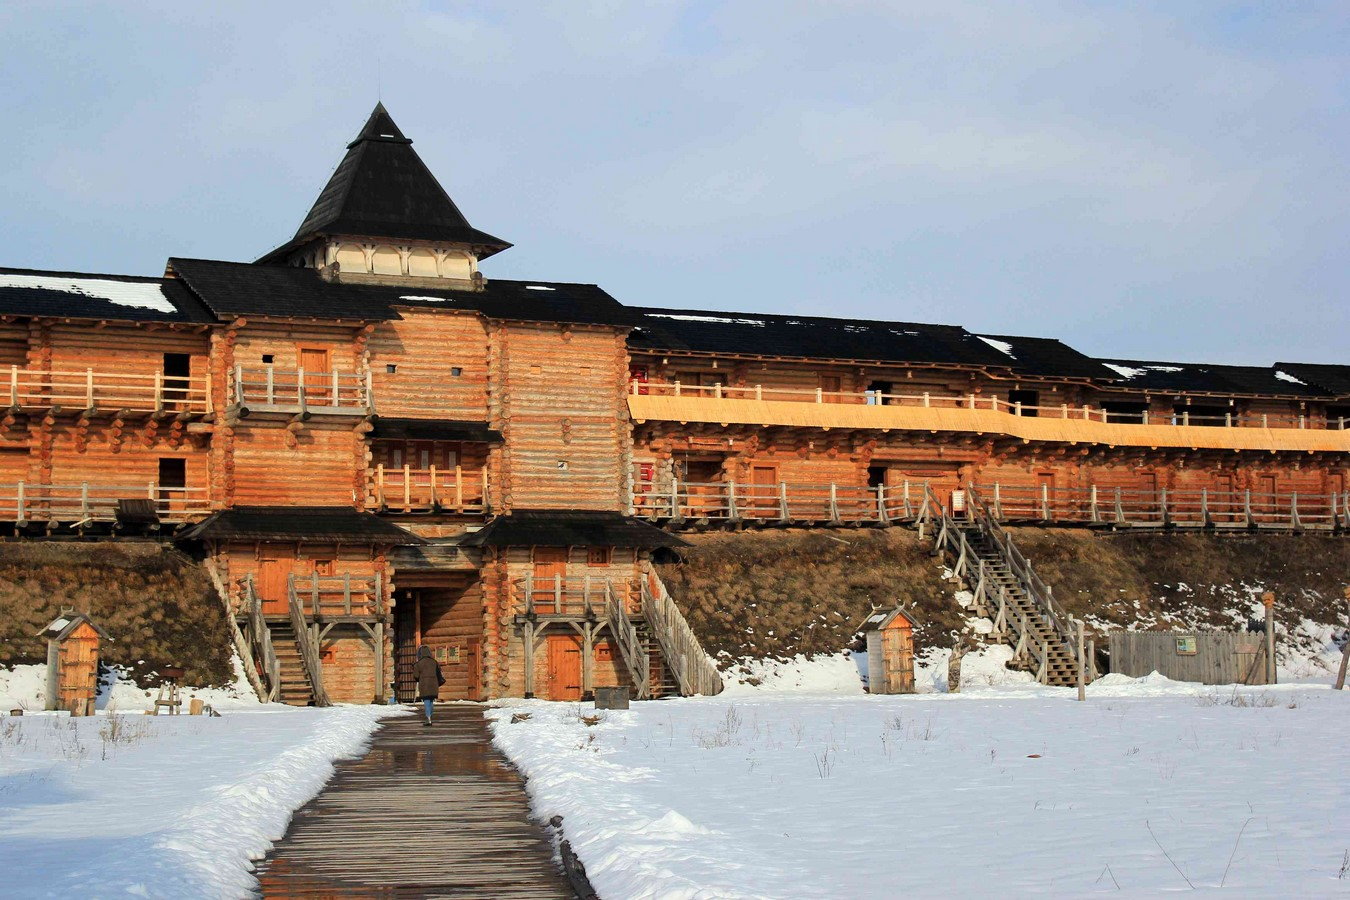 15 Kievan Rus Christian structures every Architect must visit - Sheet1